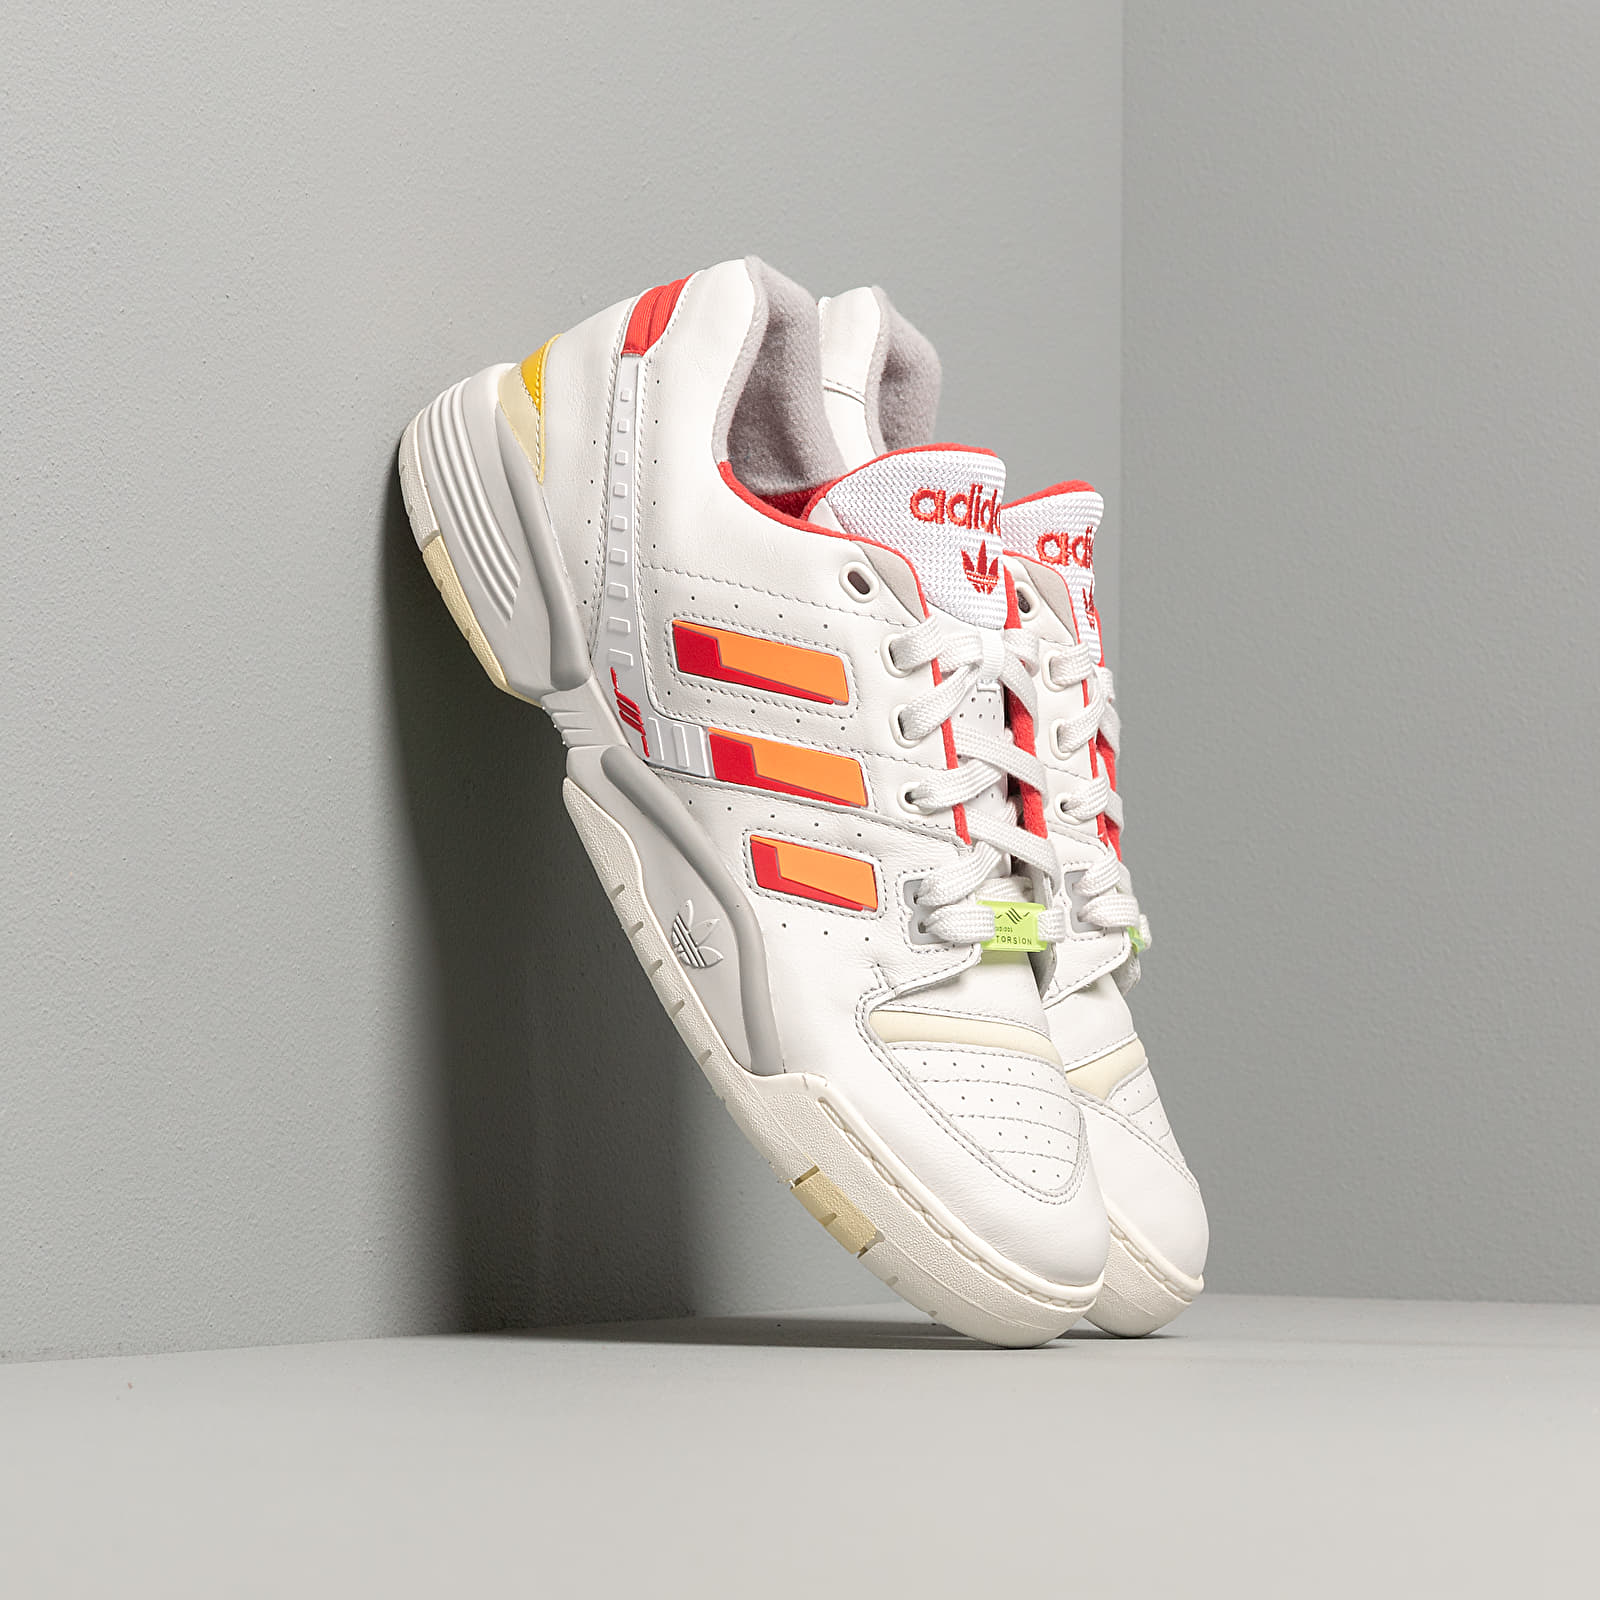 Chaussures et baskets homme adidas Torsion Comp Crystal White/ Signature Coral/ Glow Red